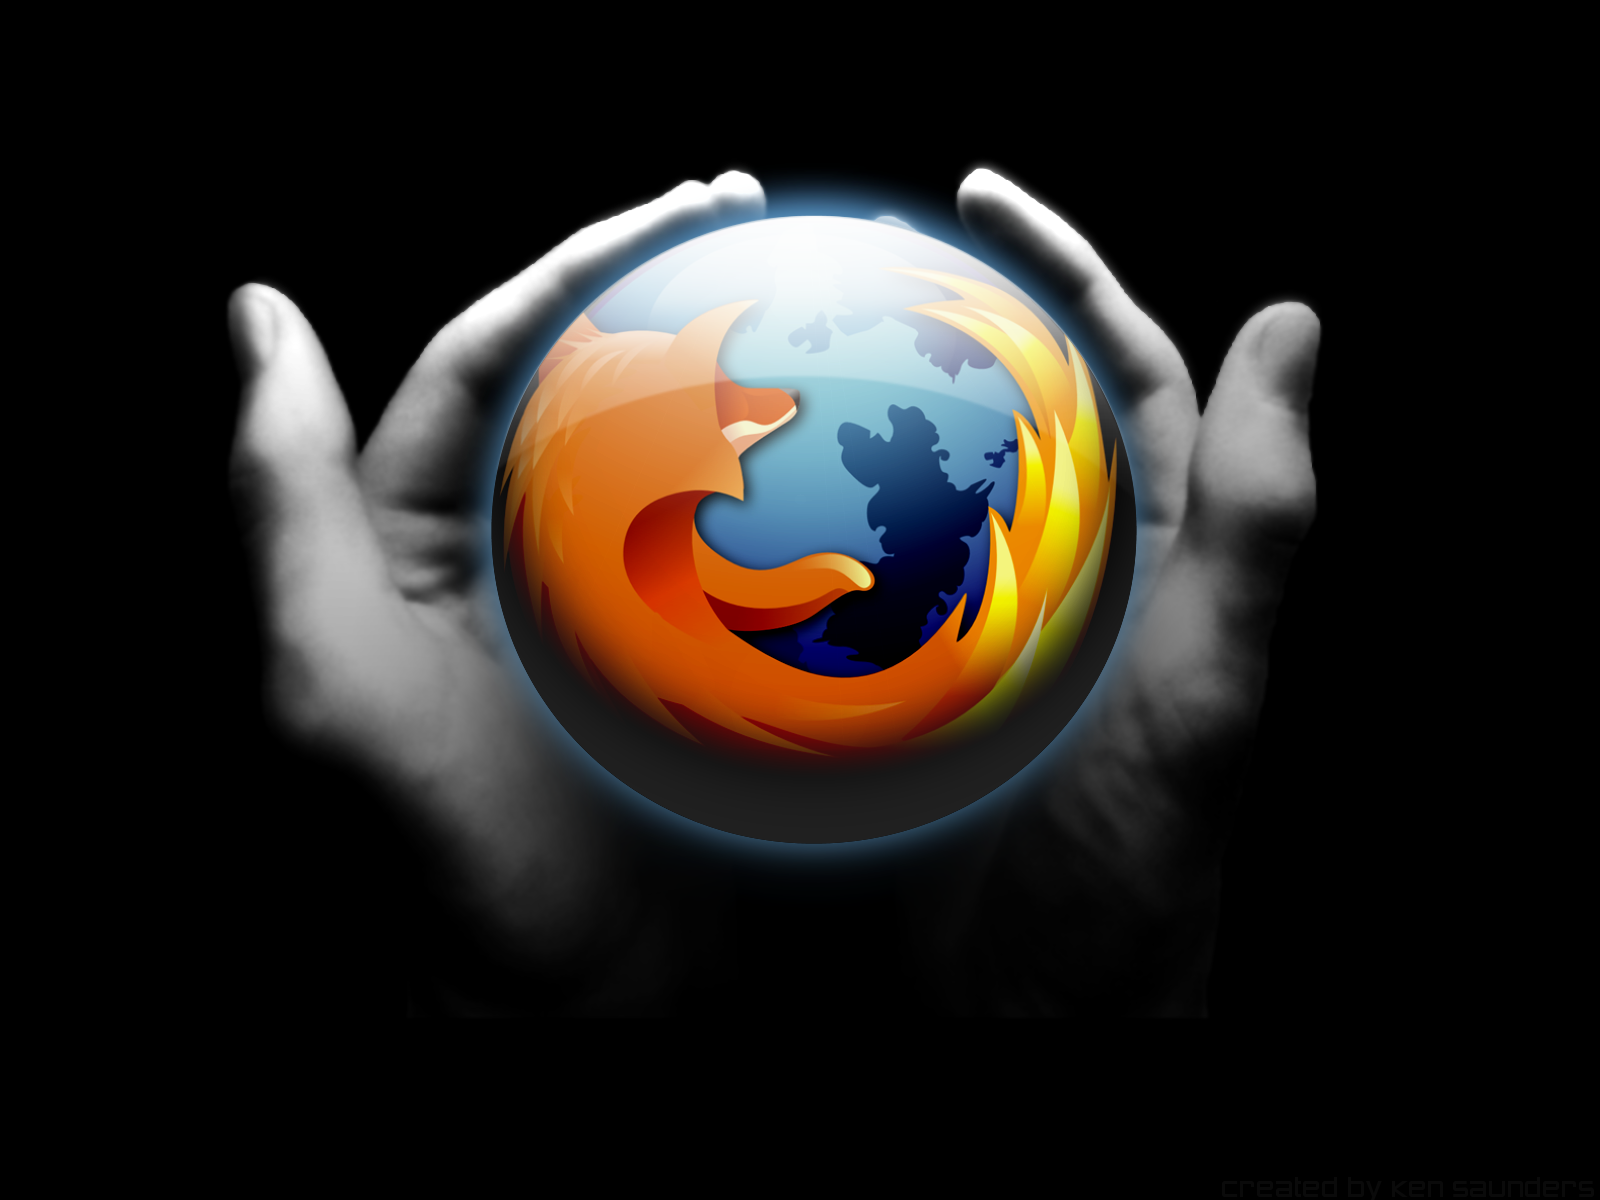 Download Awesome Mozilla Firefox Wallpapers HQ [1600x1200